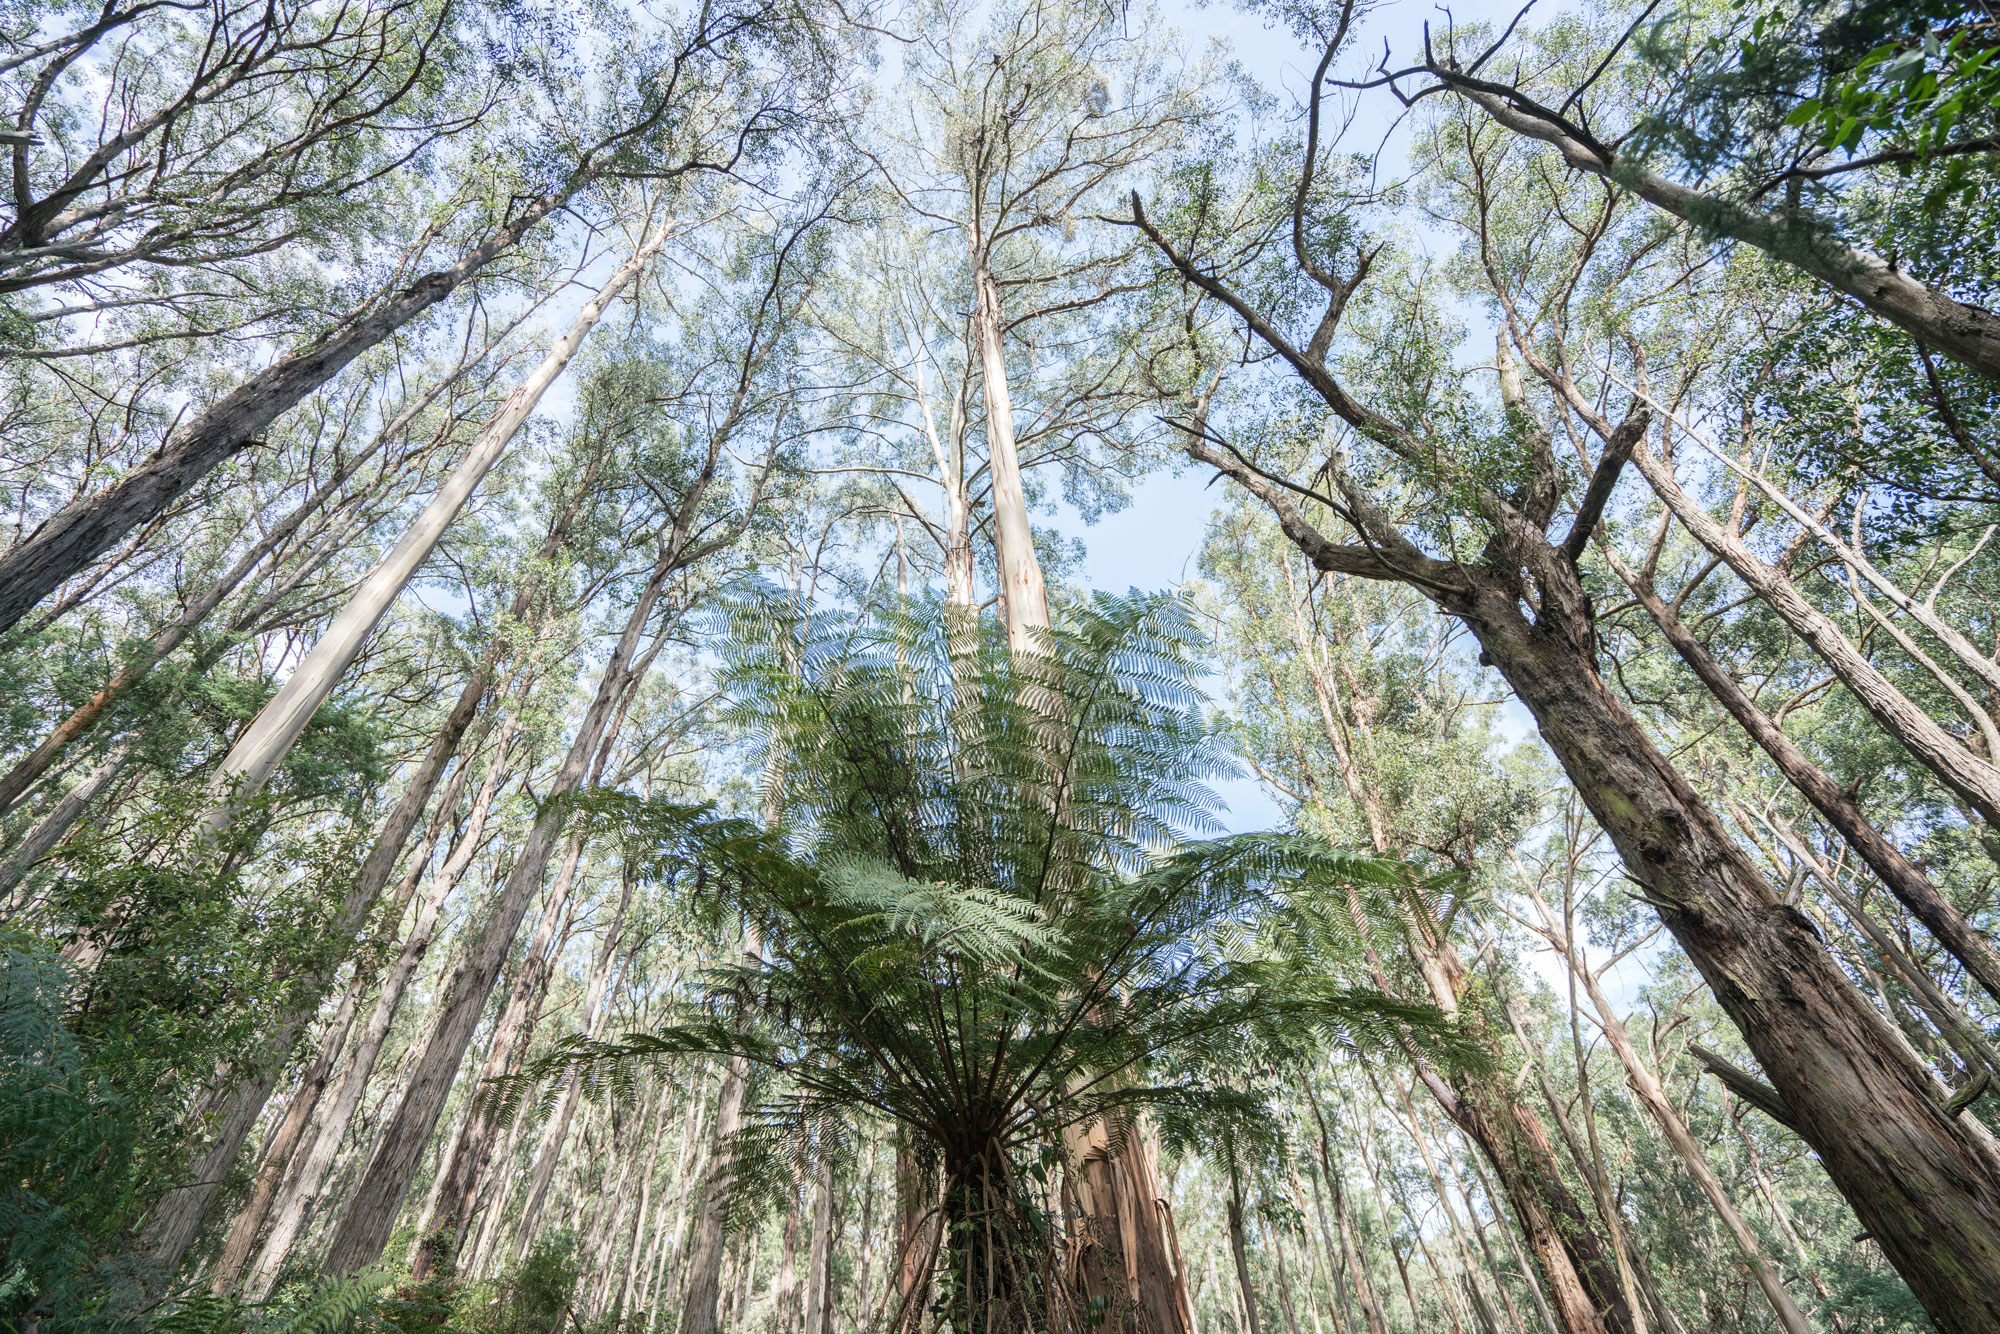 Dandenong Ranges Forest. Photo by Erika's Way Photography